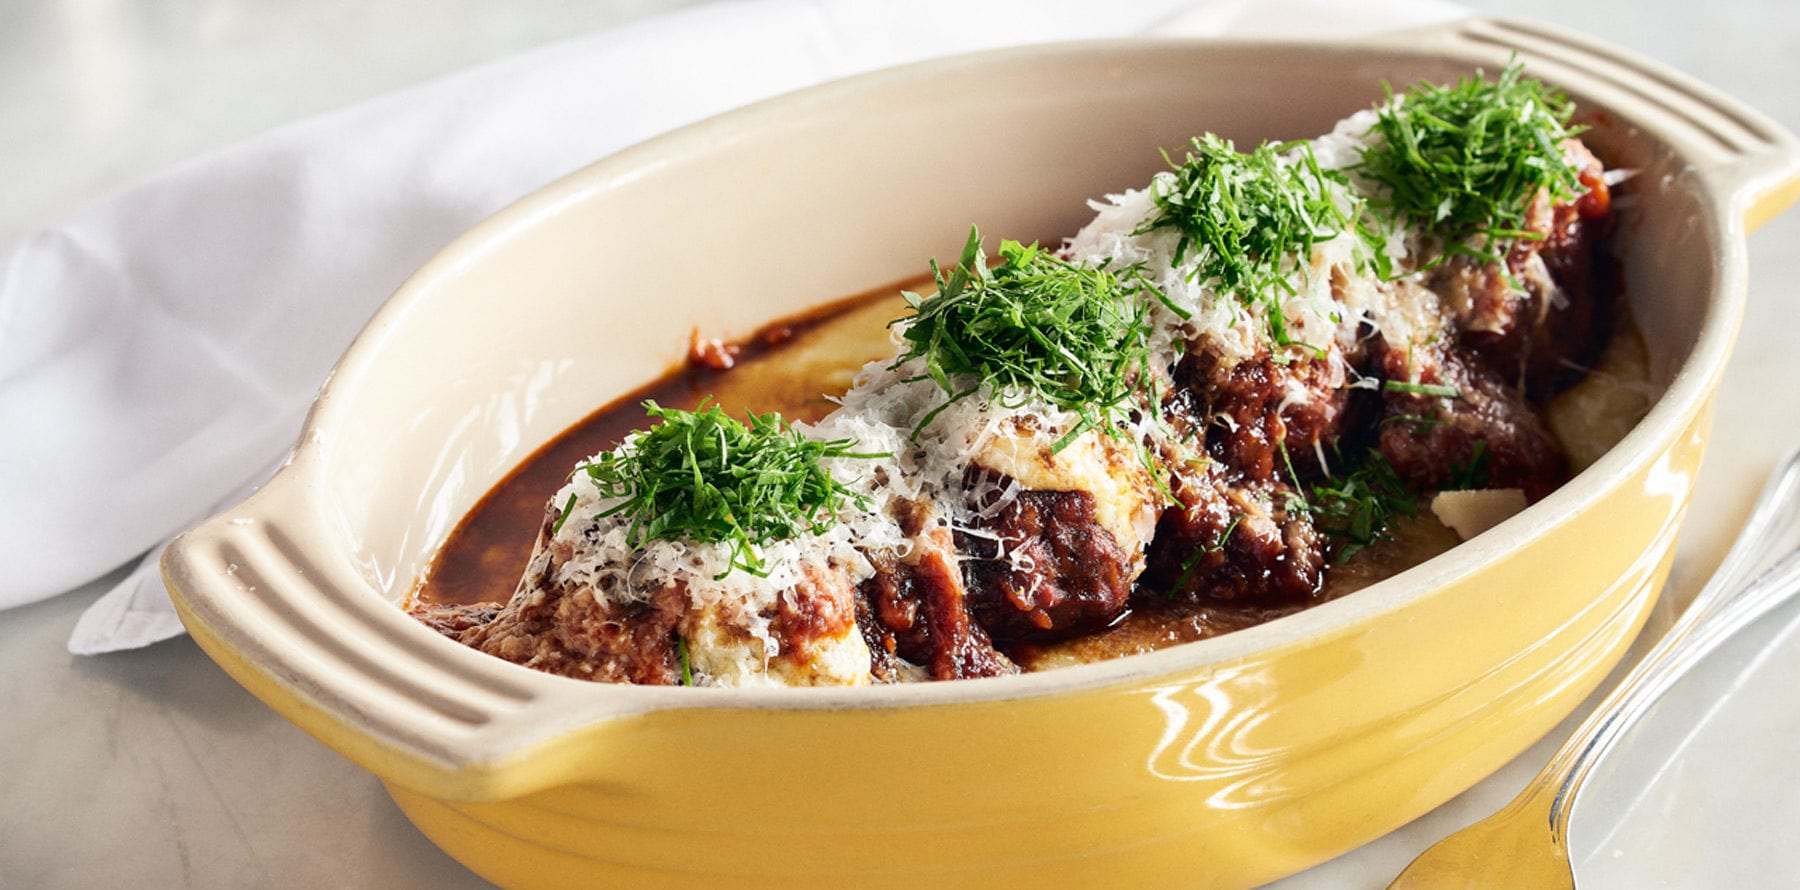 Destination Dishes: Town's Ricotta-stuffed Meatballs